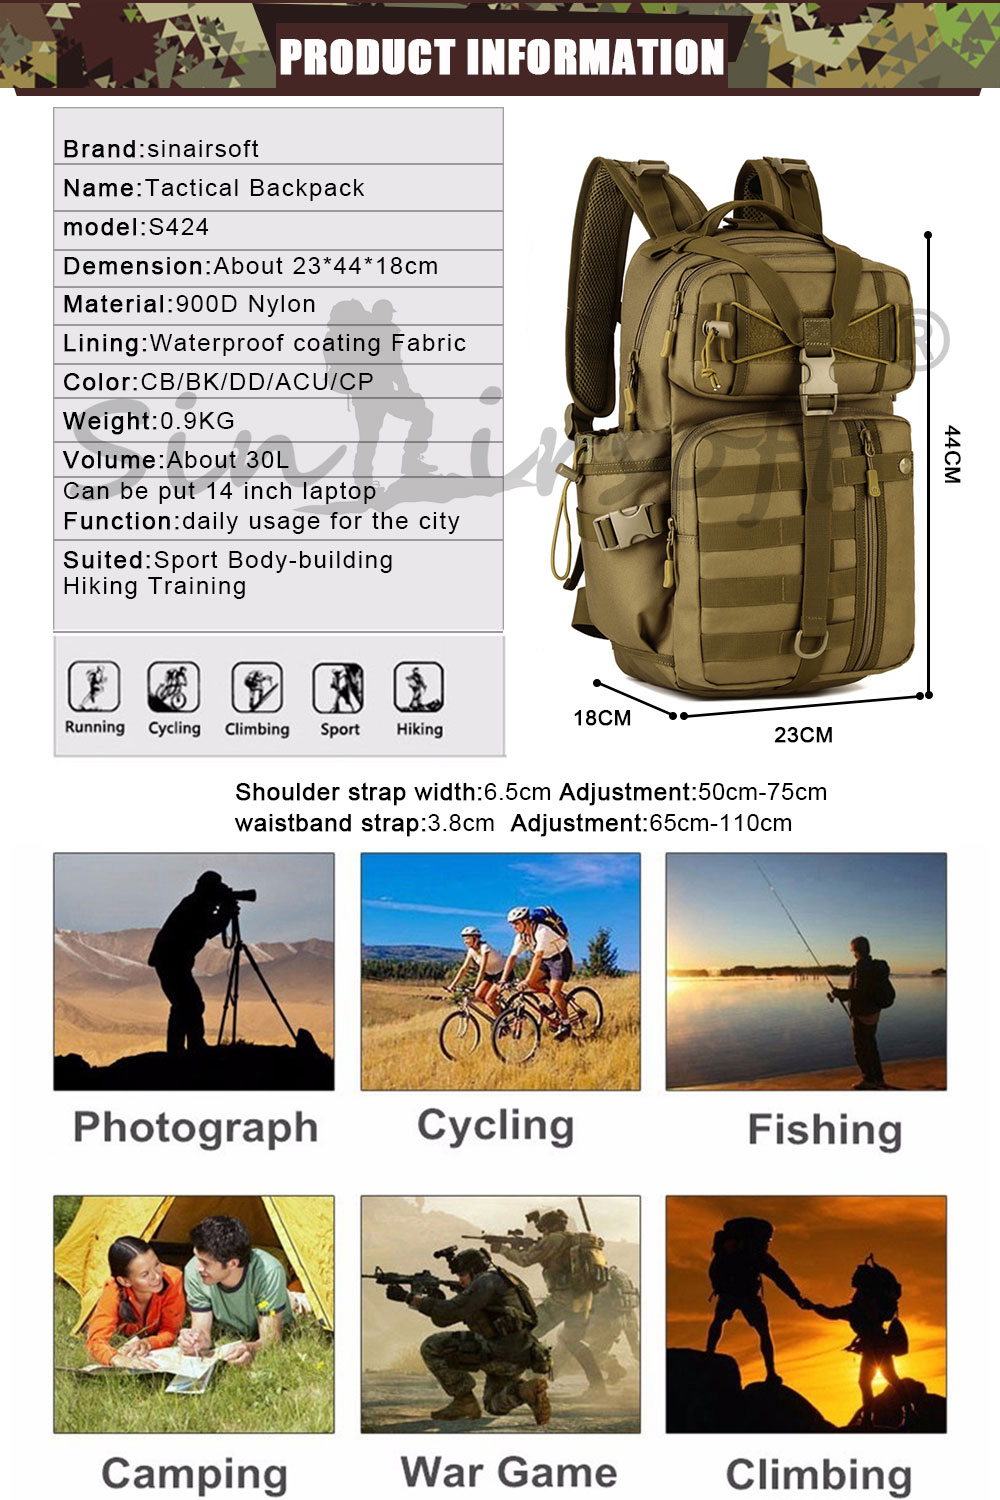 HTB1vkCpQFXXXXb8XVXXq6xXFXXXv - SINAIRSOFT Outdoor Tactical Backpack 900D Waterproof Army Shoulder Military hunting camping Multi-purpose Molle Sport Bag LY0057